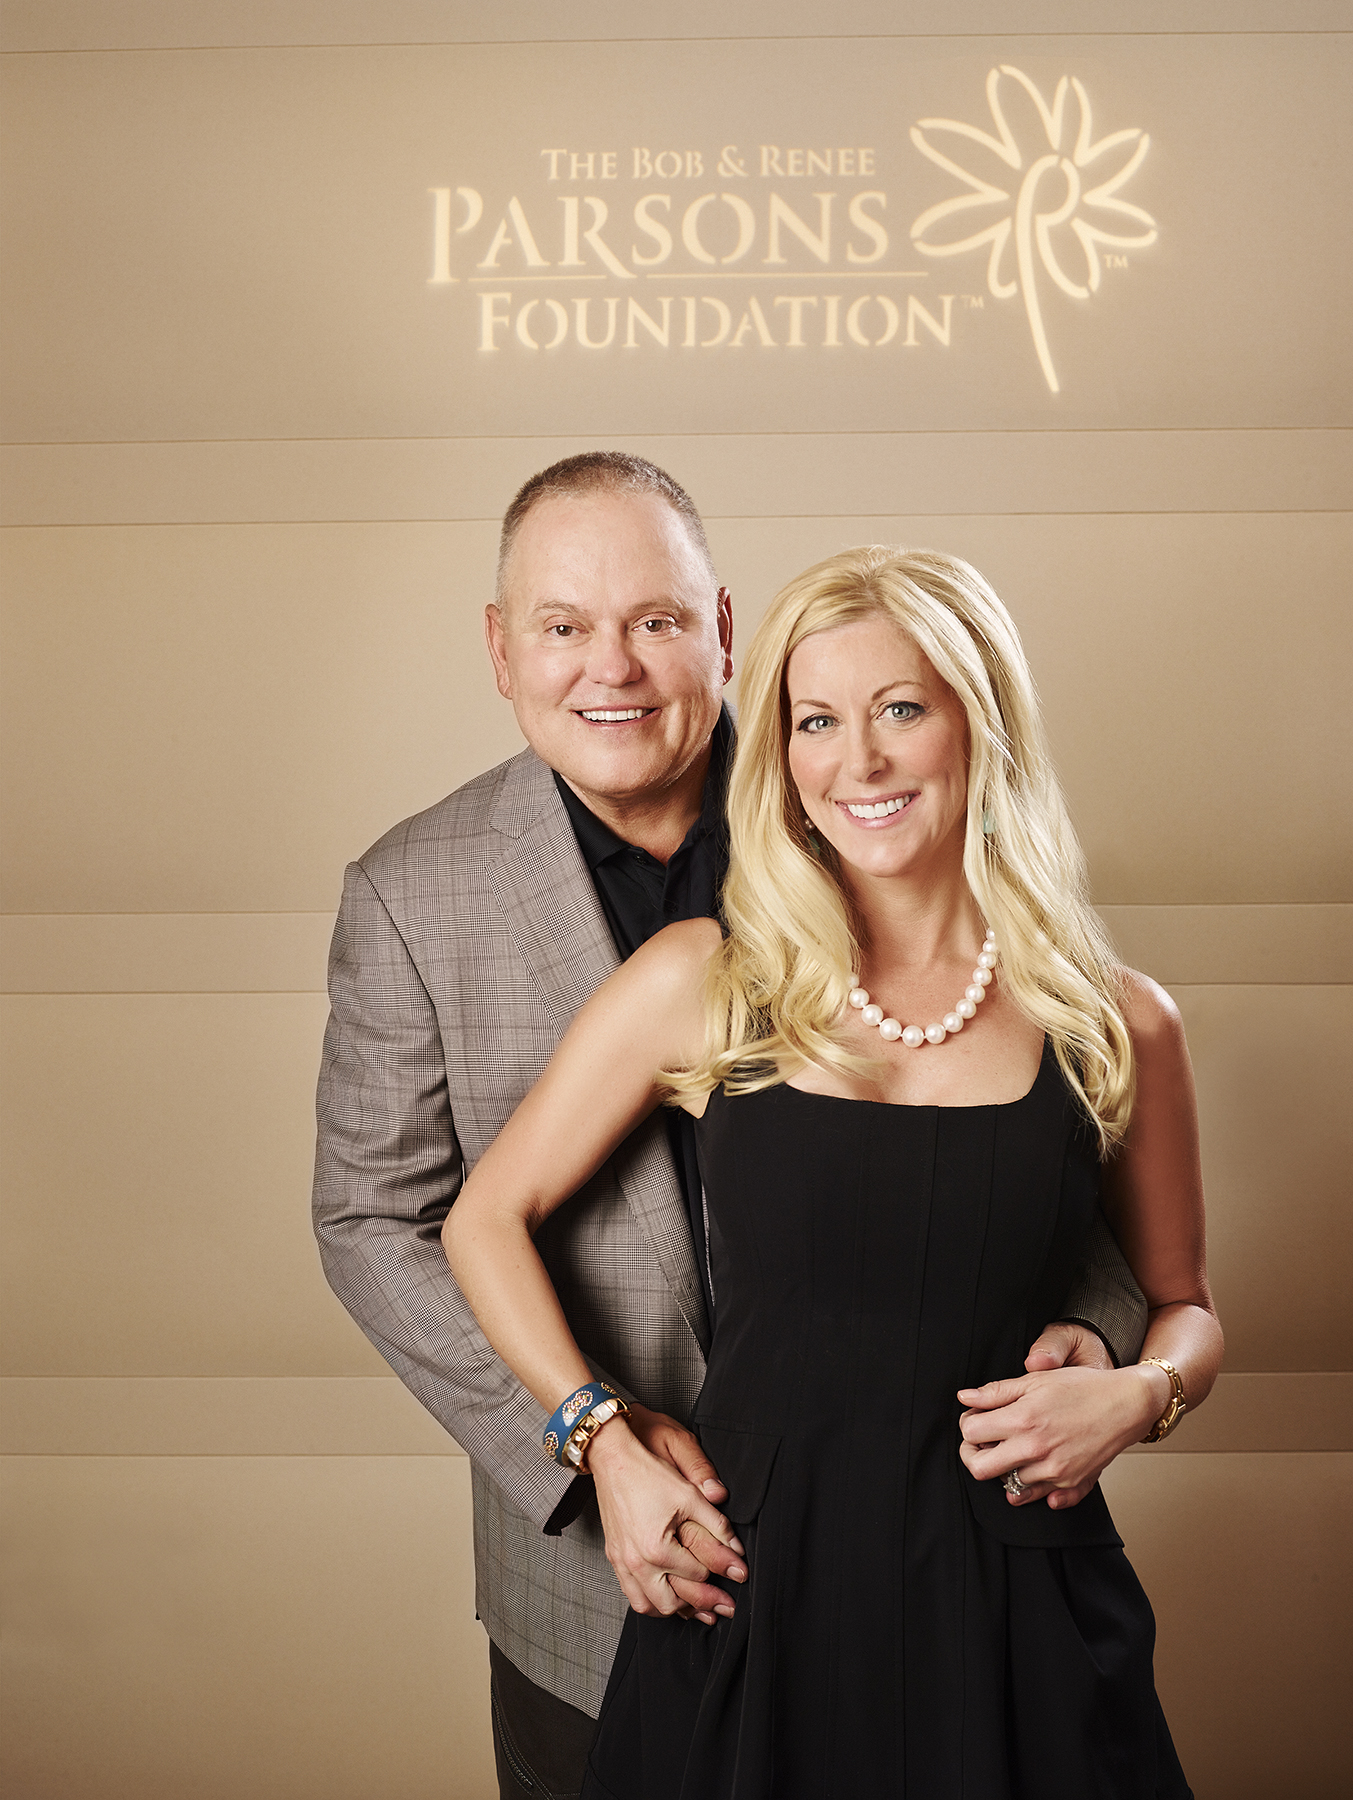 Surpassing $34MM in Giving The Bob & Renee Parsons Foundation